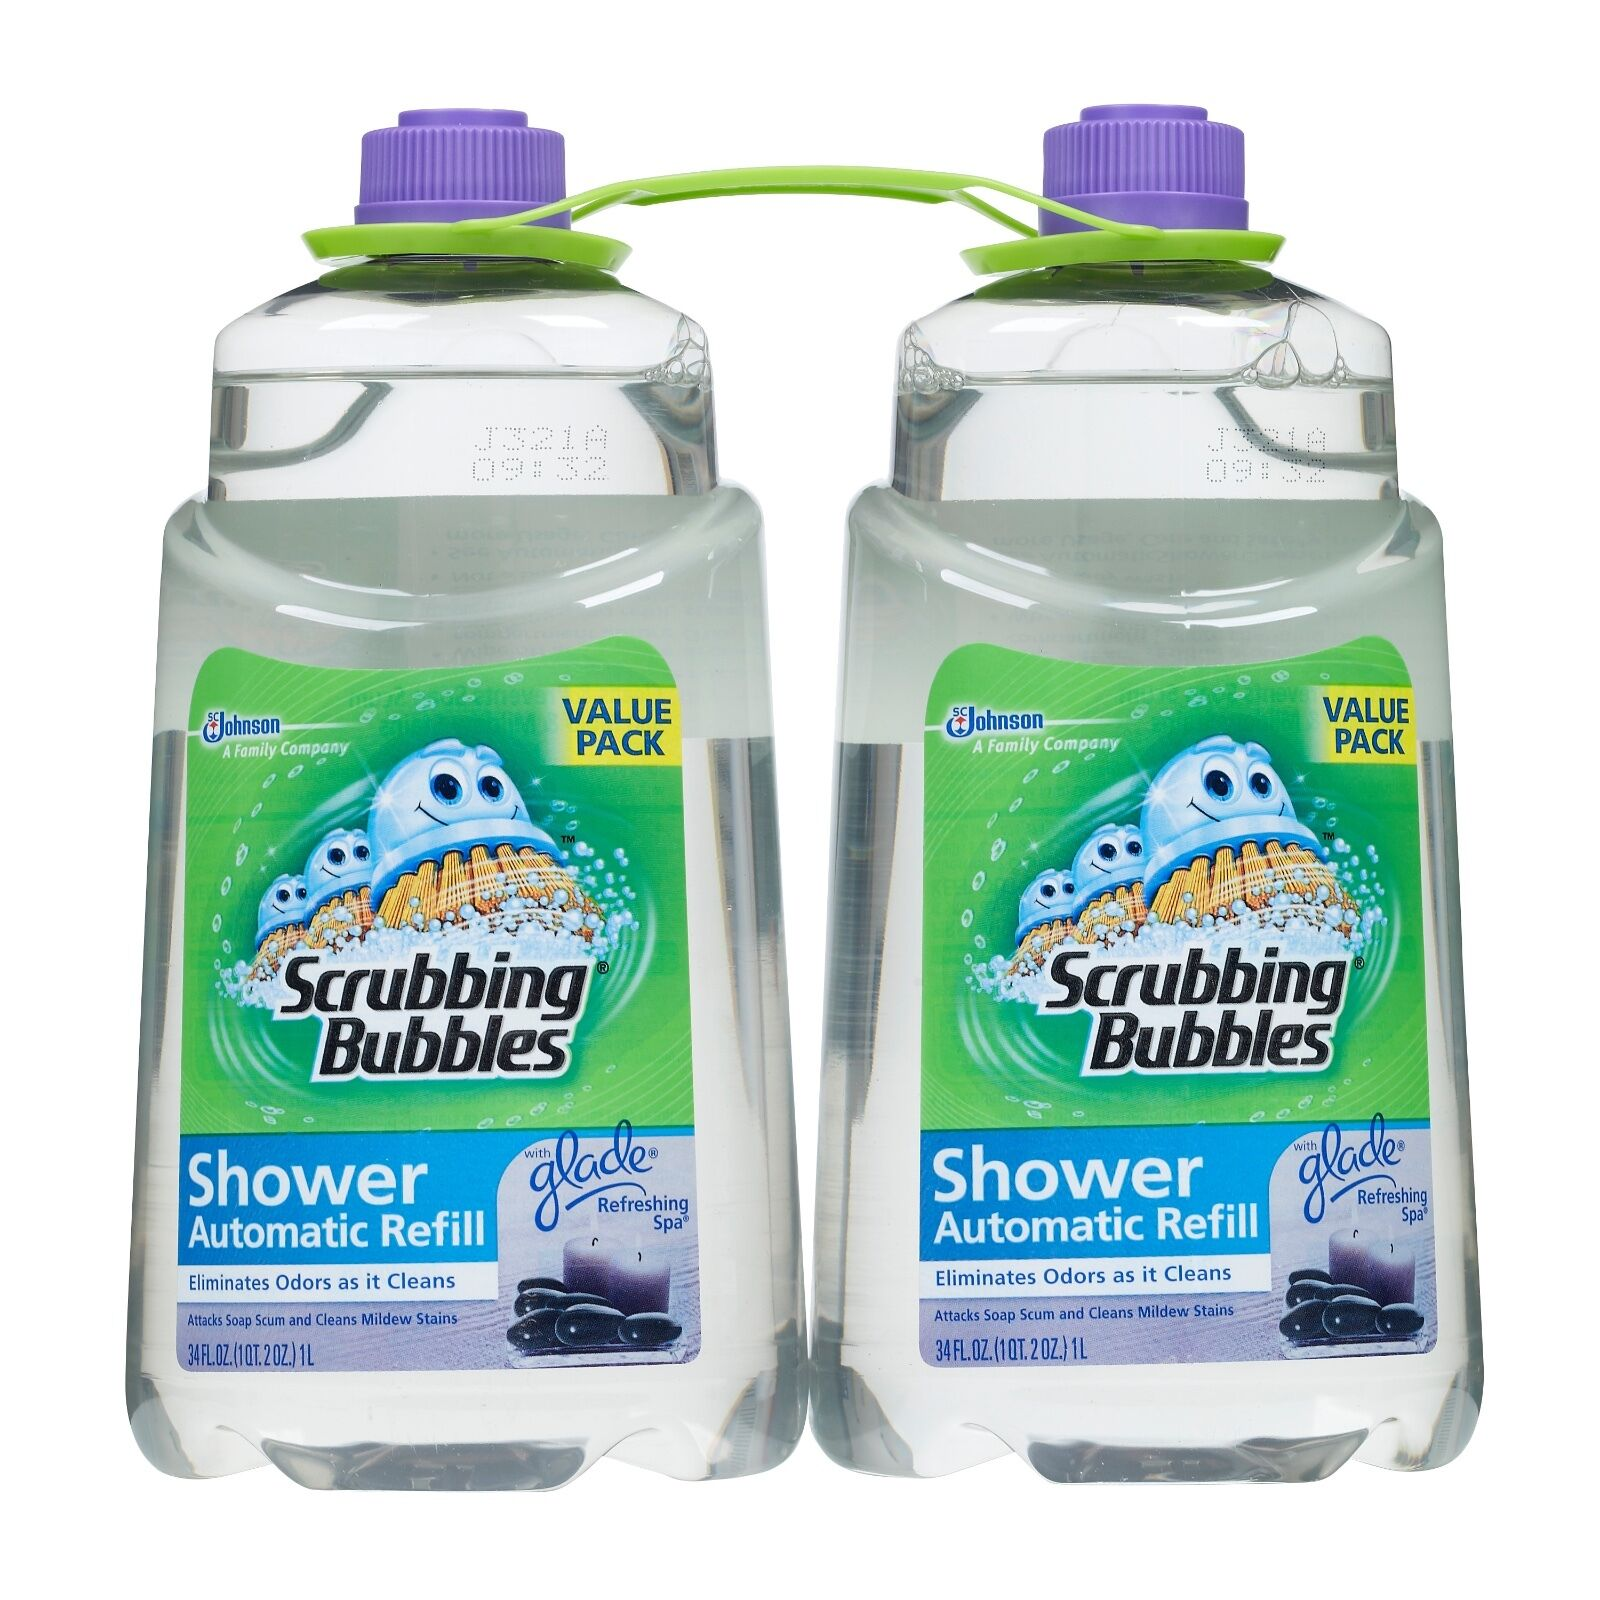 Scrubbing Bubbles Automatic Shower Cleaner Refill Refreshing Spa 64 ...